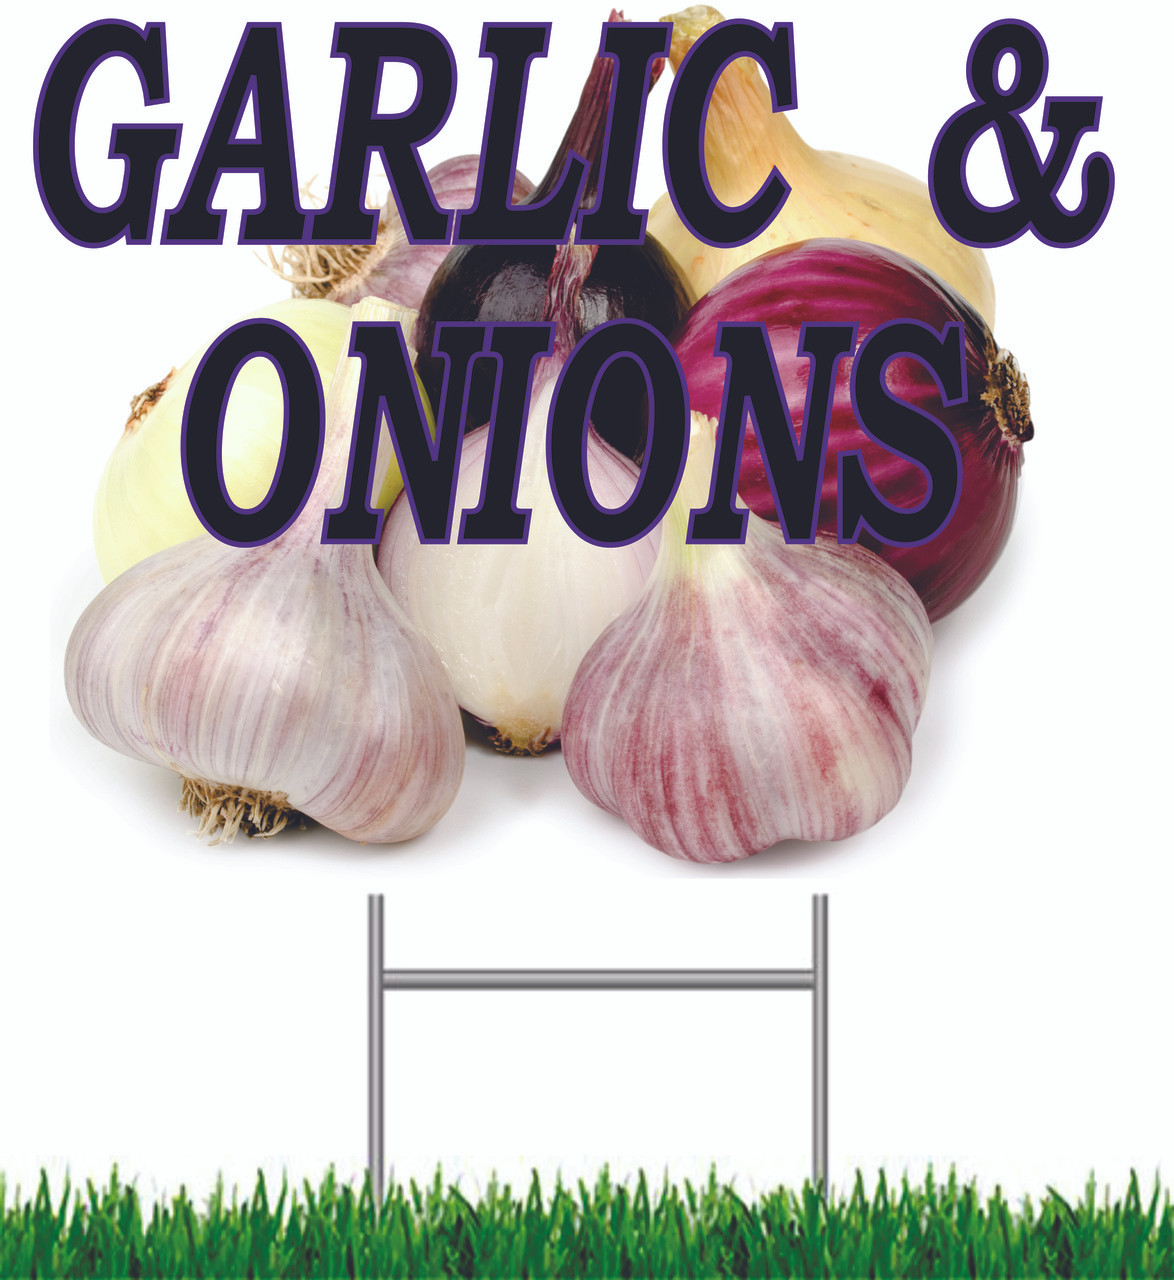 Garlic & Onions Yard Sign will get your market noticed.